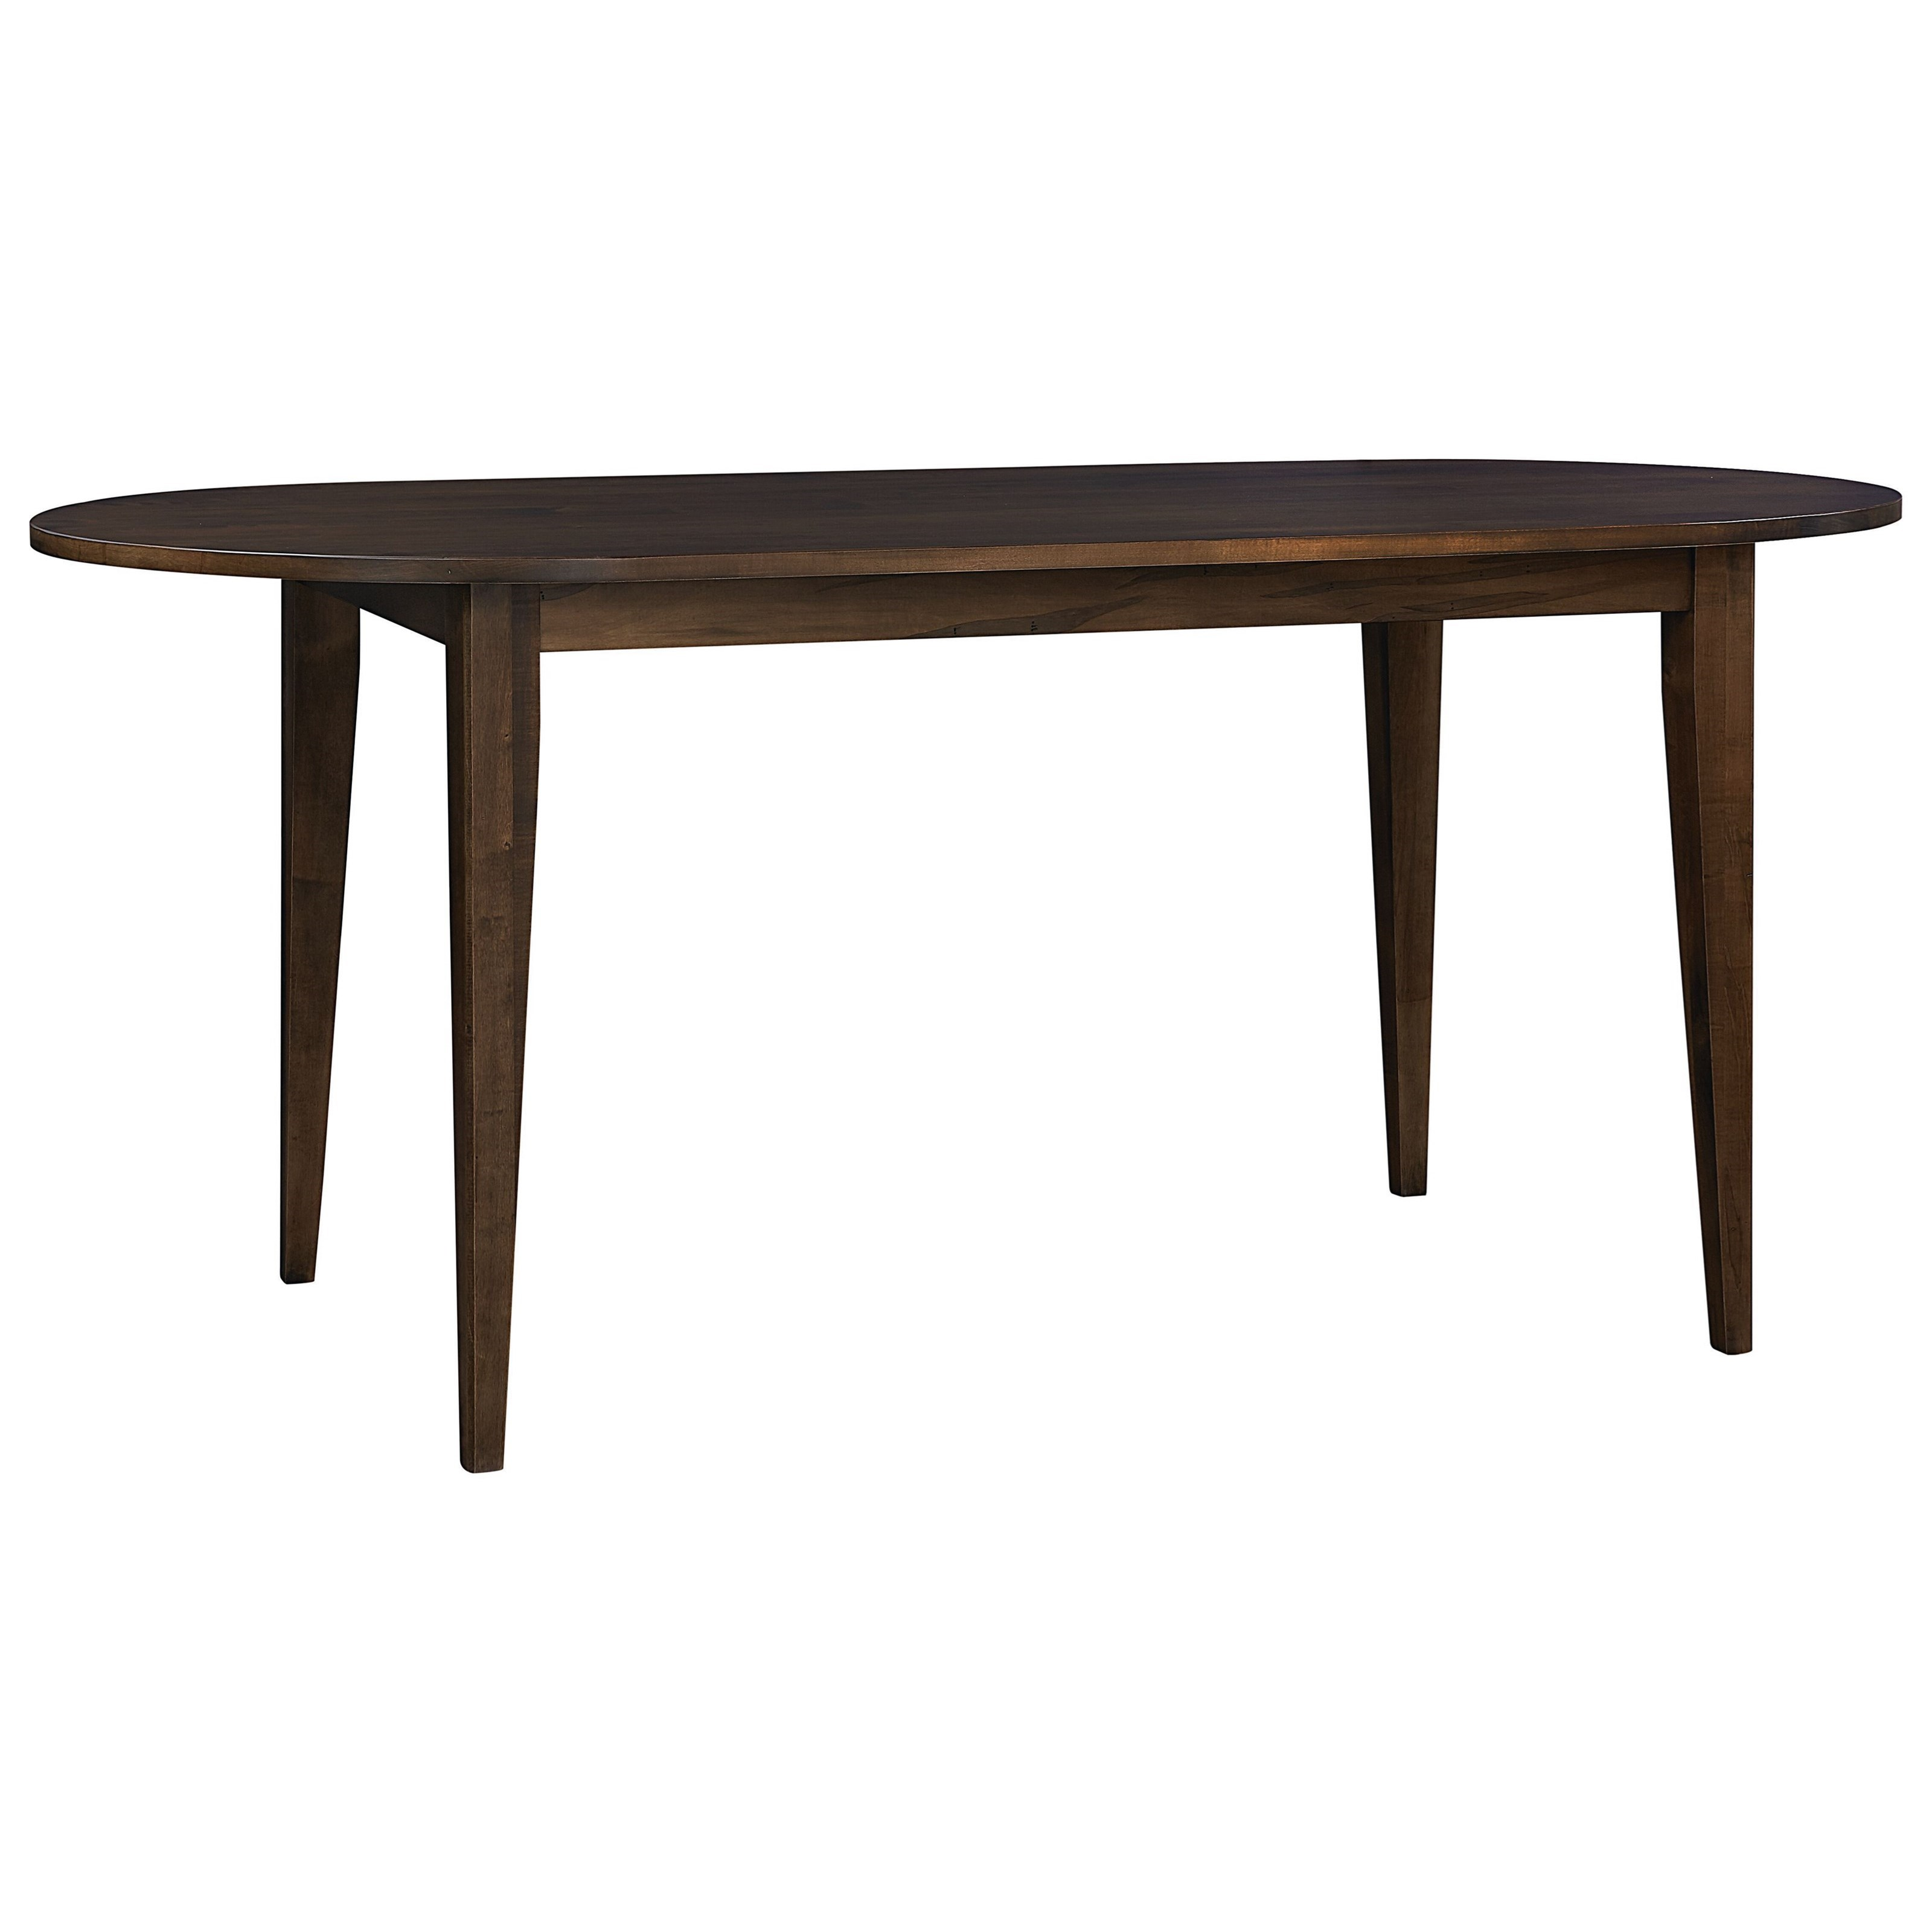 BenchMade Counter Height Table by Bassett at Bassett of Cool Springs